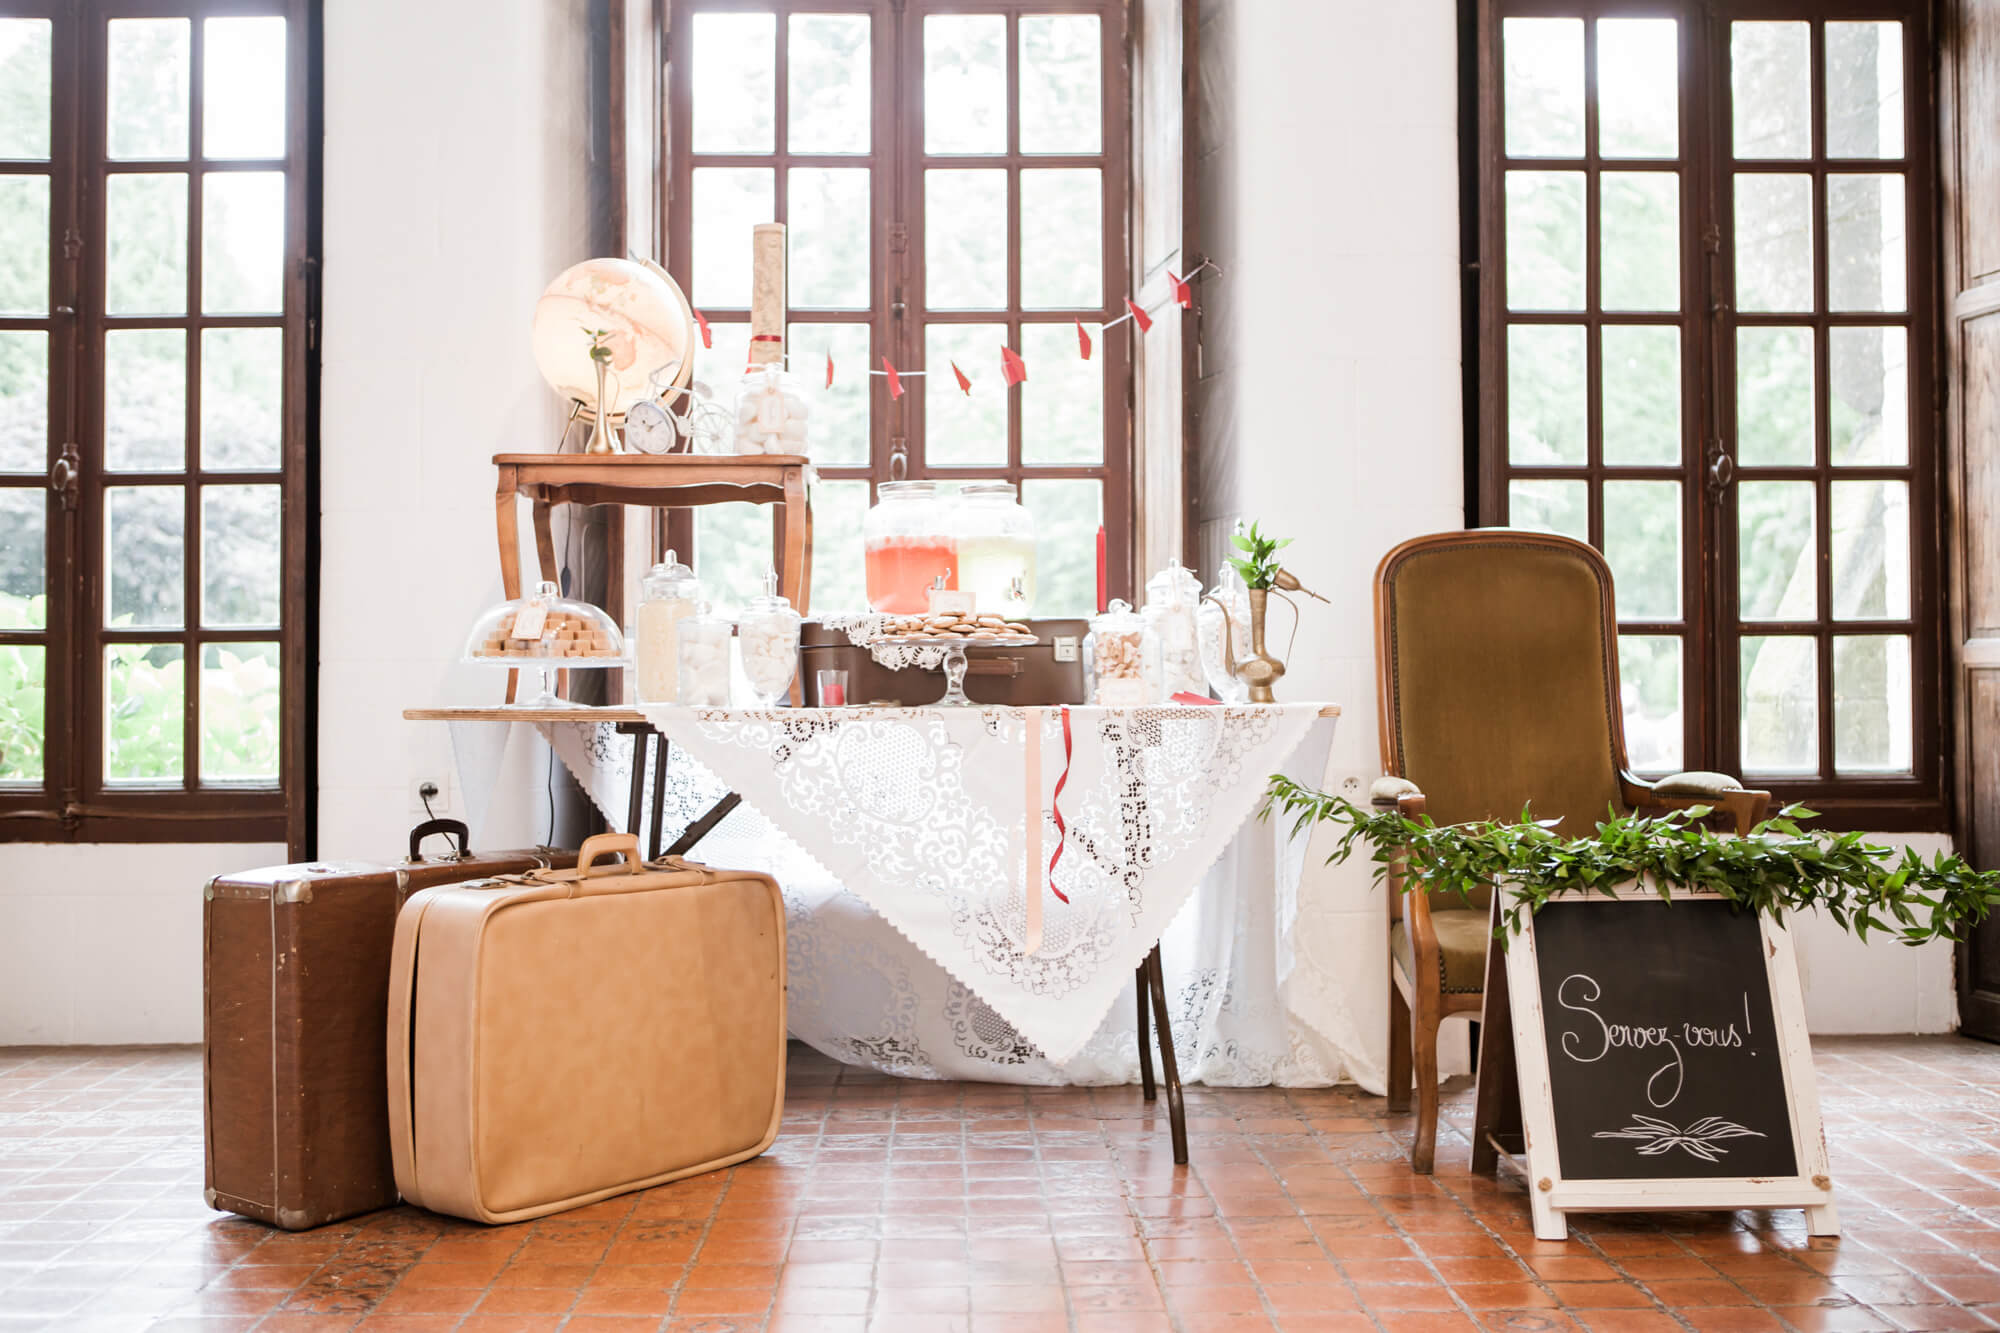 candy_bar_voyage_kinfolk_decor